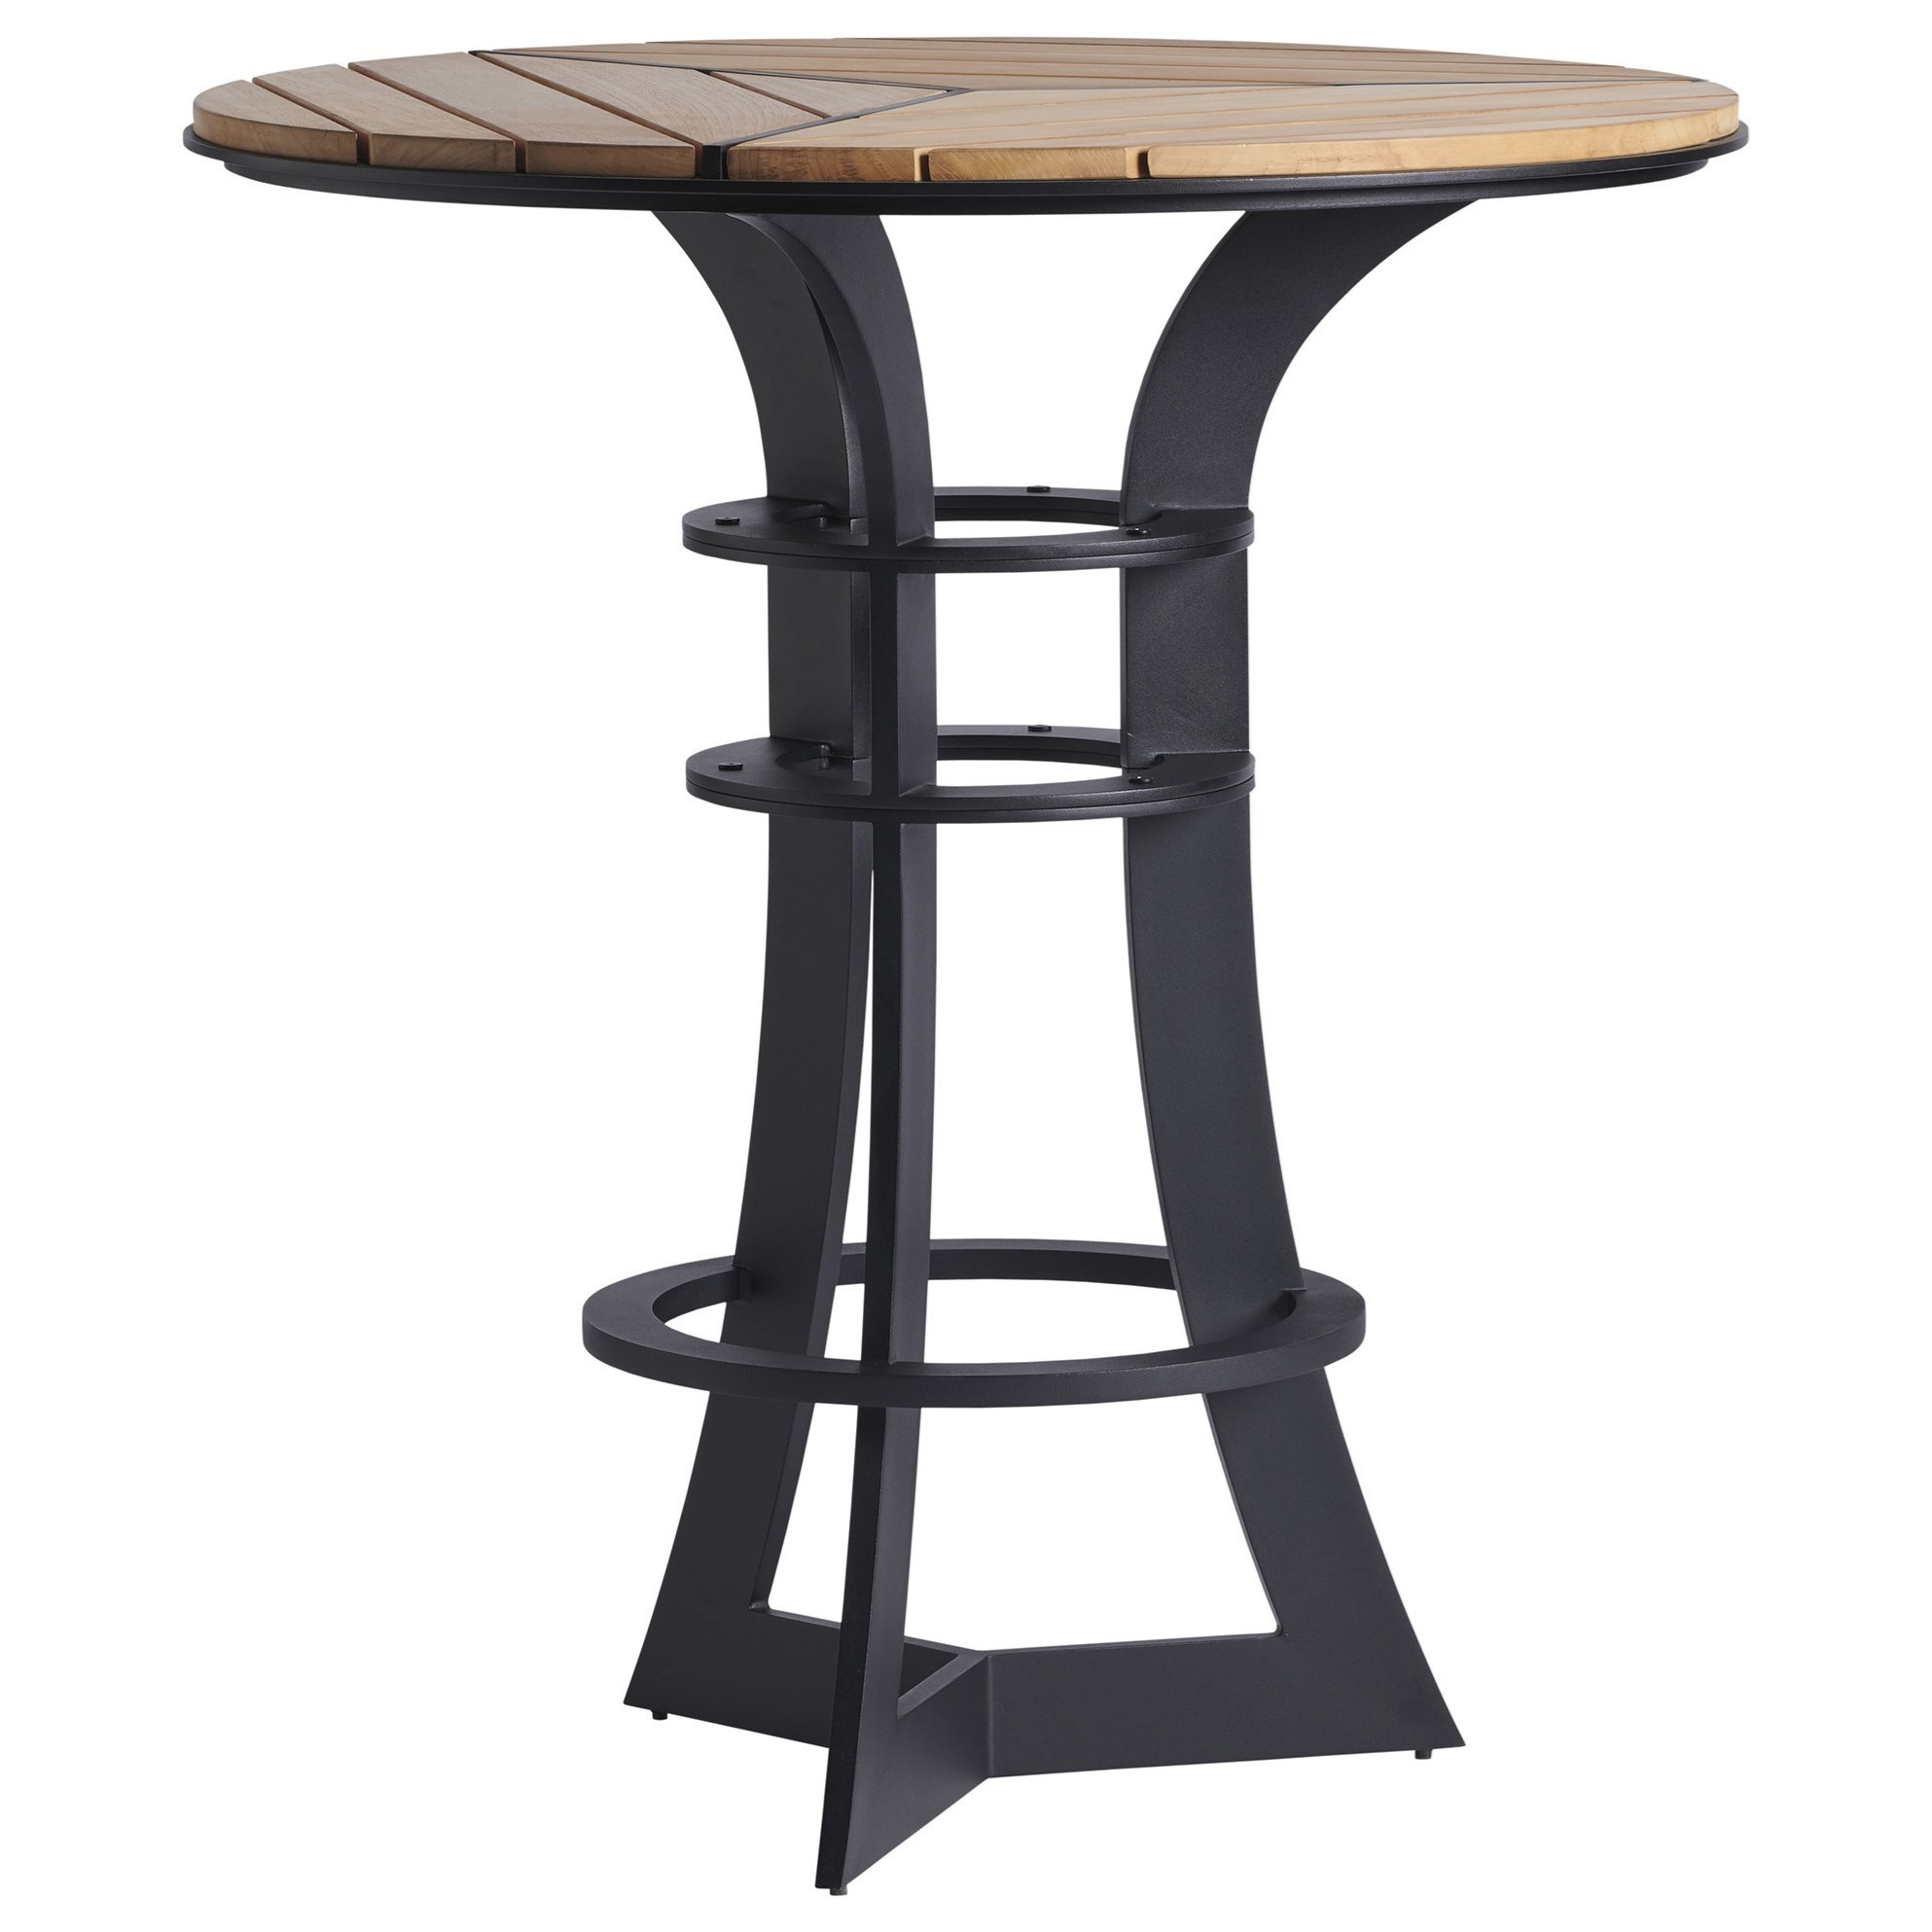 South Beach Bistro Table by Tommy Bahama Outdoor Living at Baer's Furniture